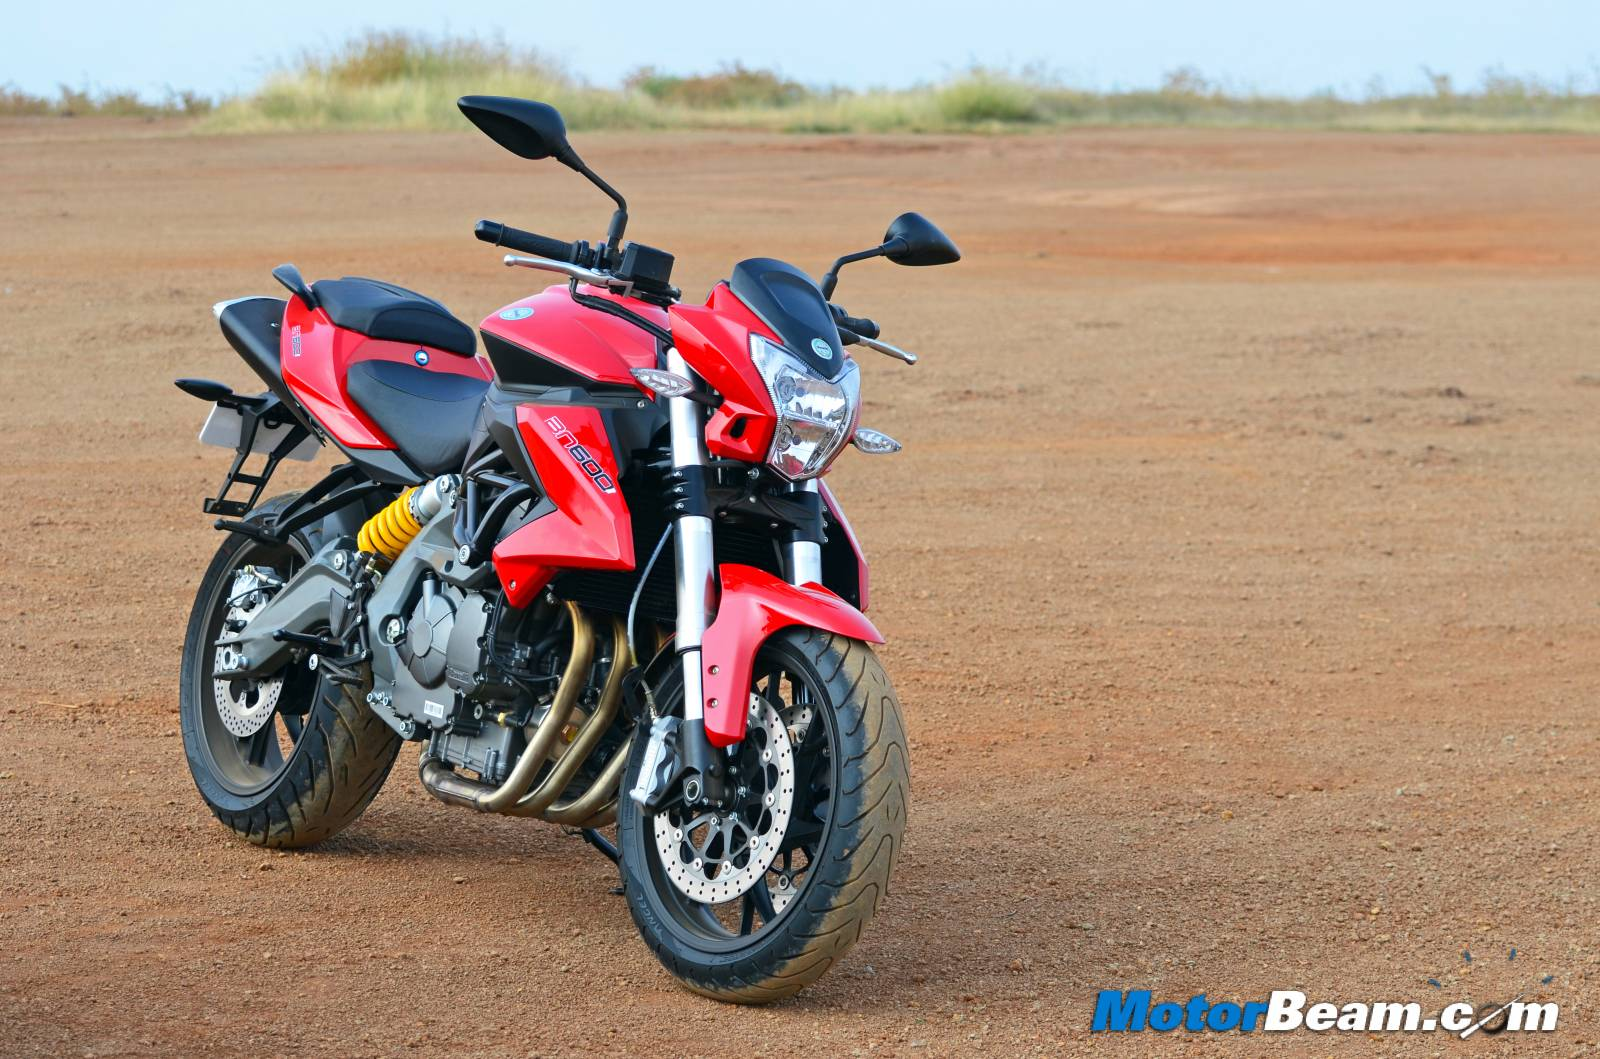 Benelli BN 600i Test Ride Review